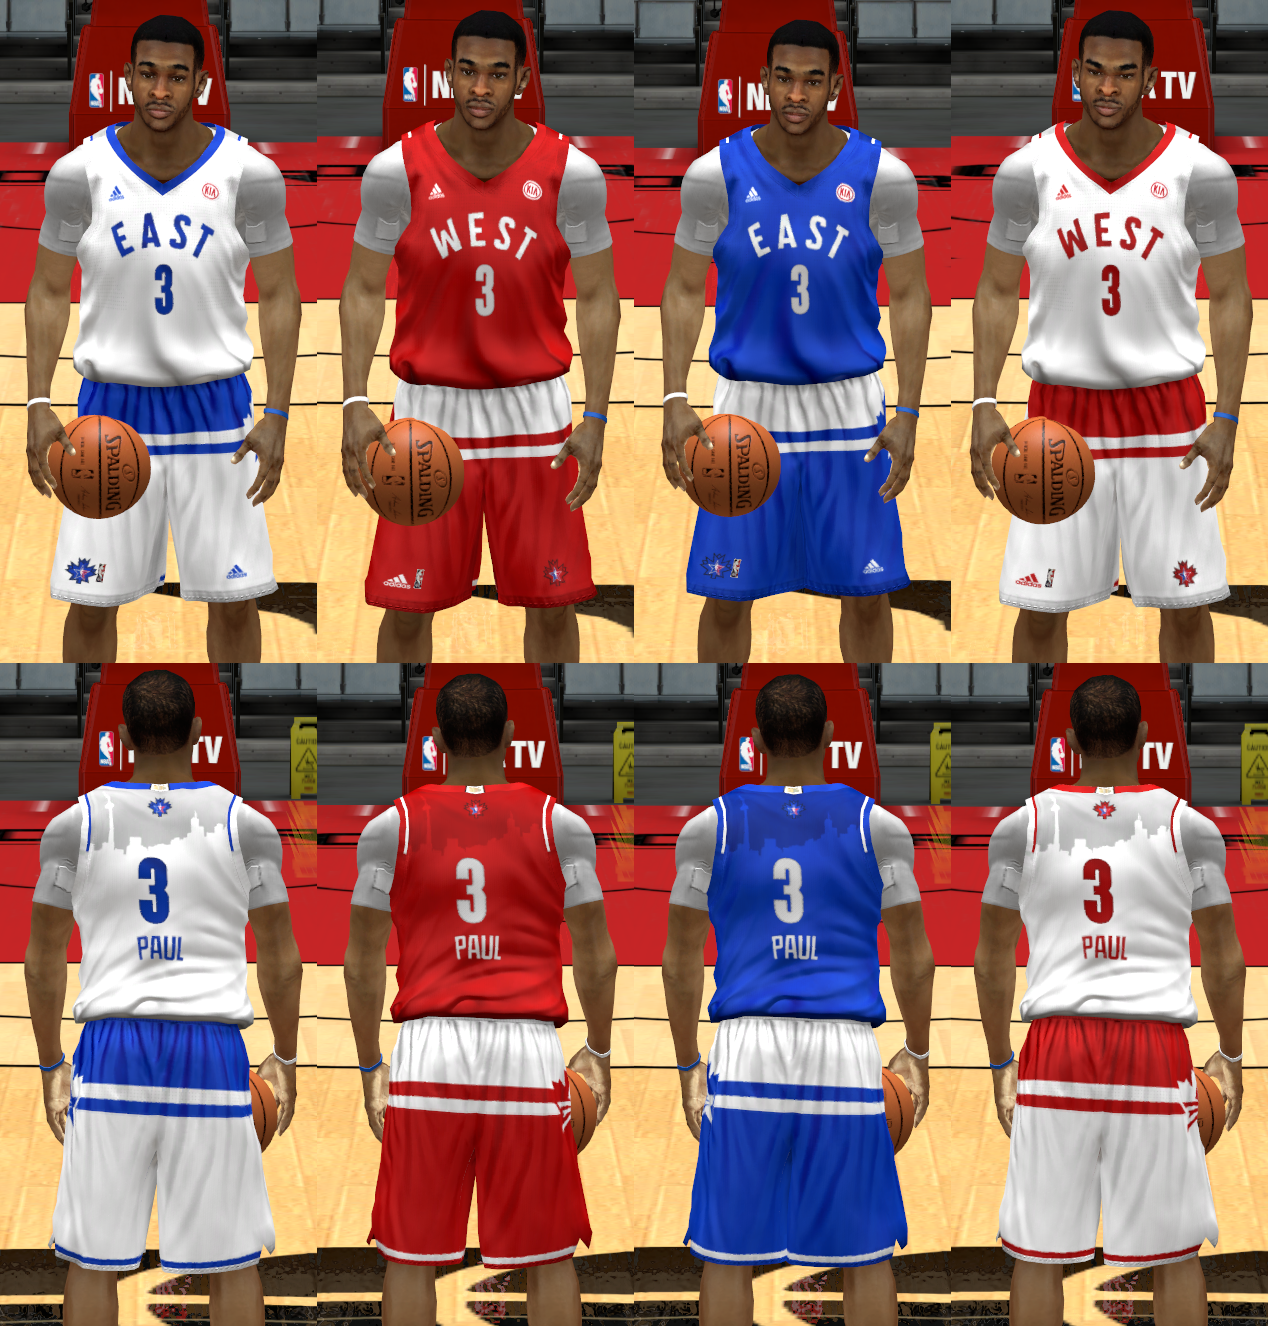 2016 All-Star Game Uniforms